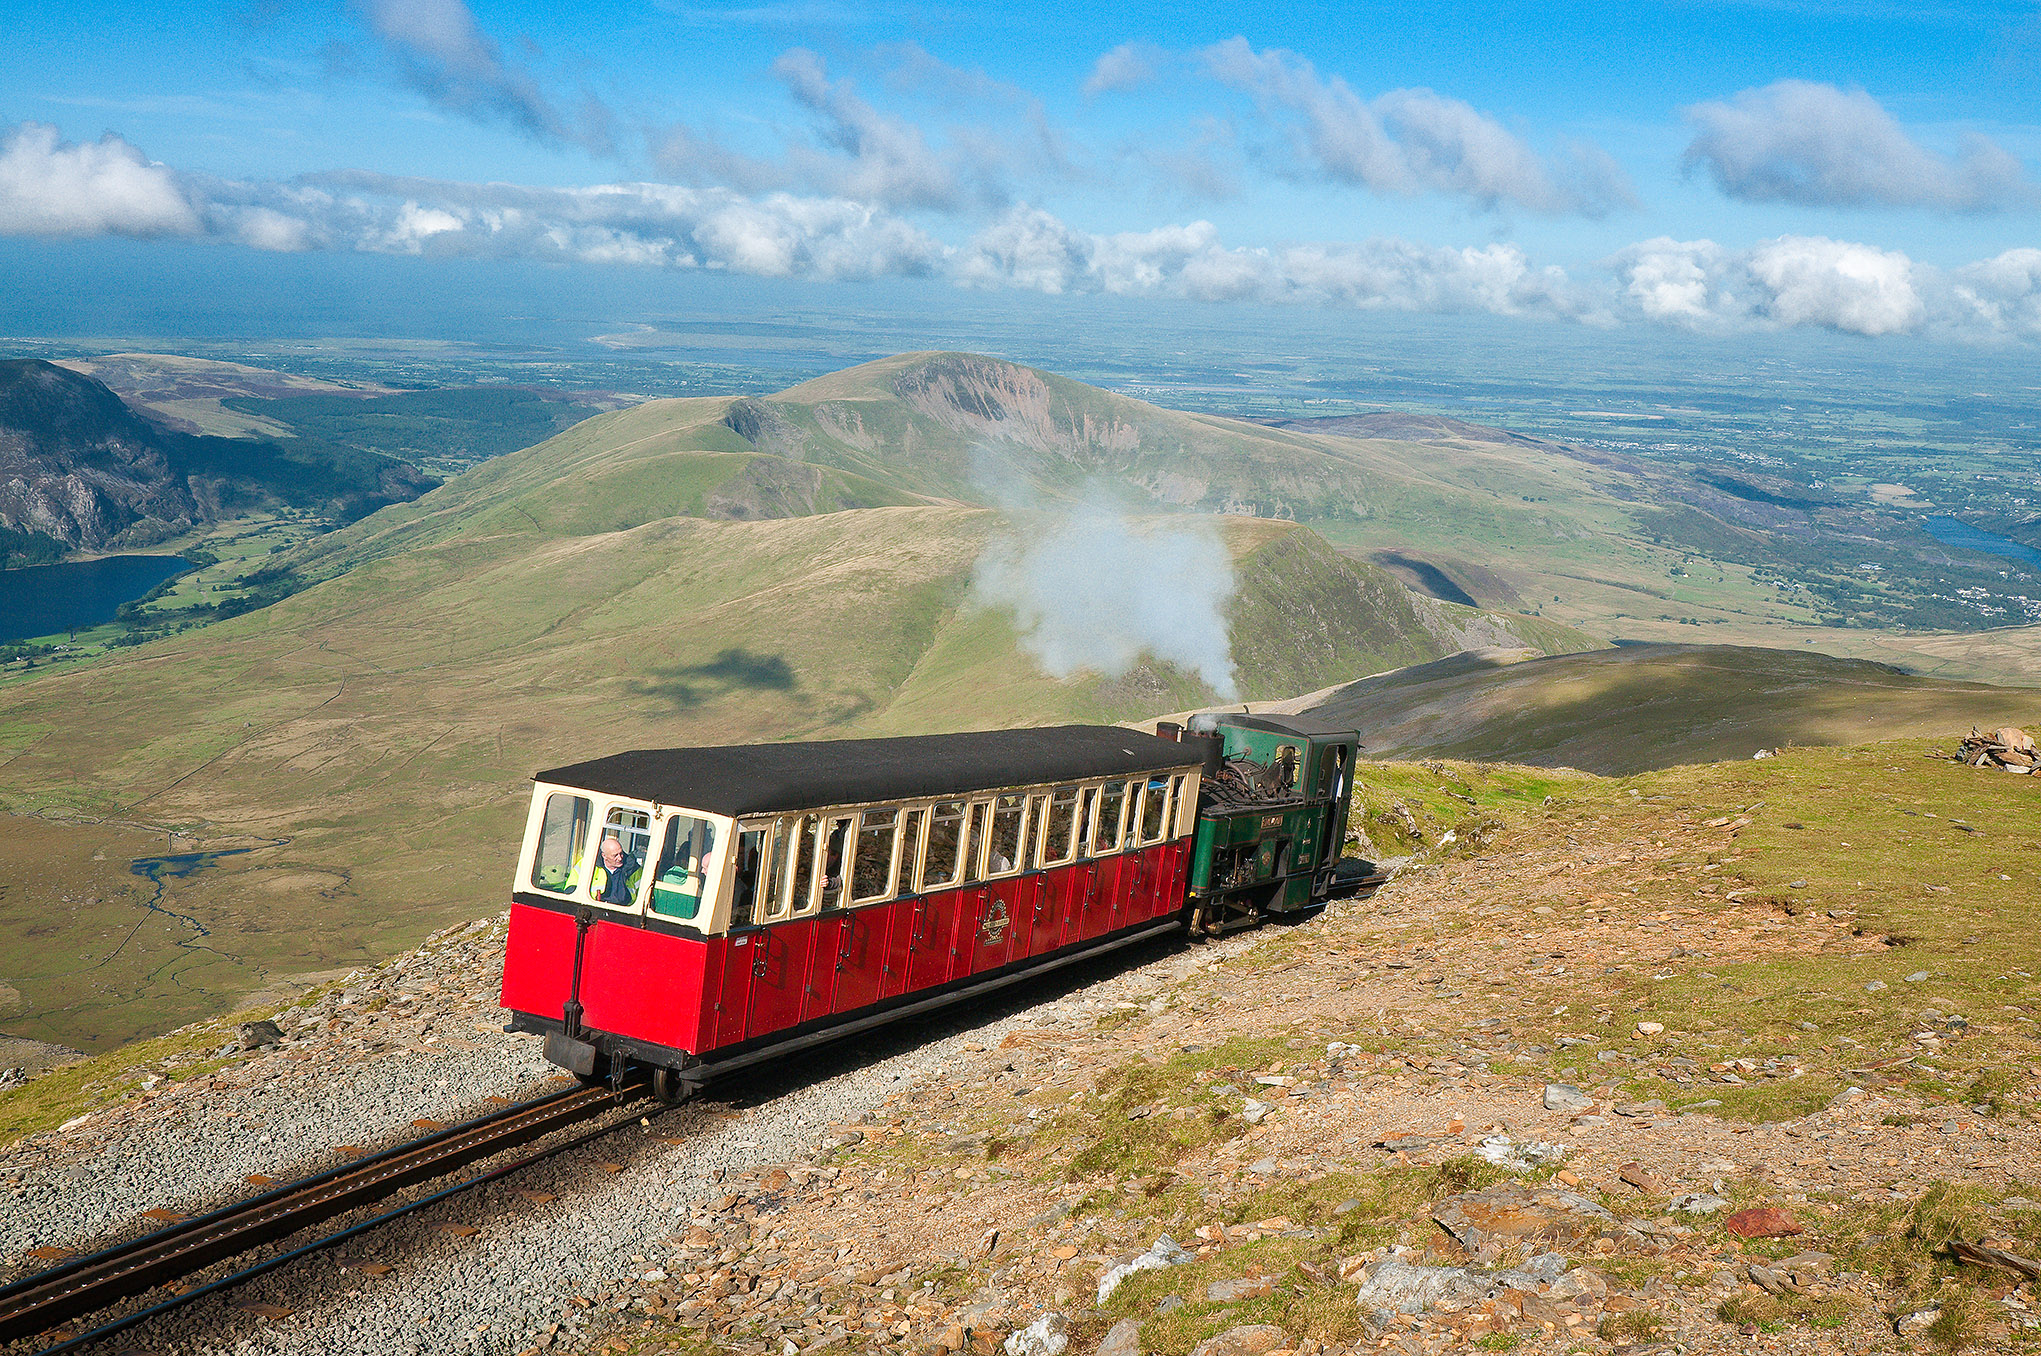 Snowdon Mountain Railway, things to see and do in North Wales